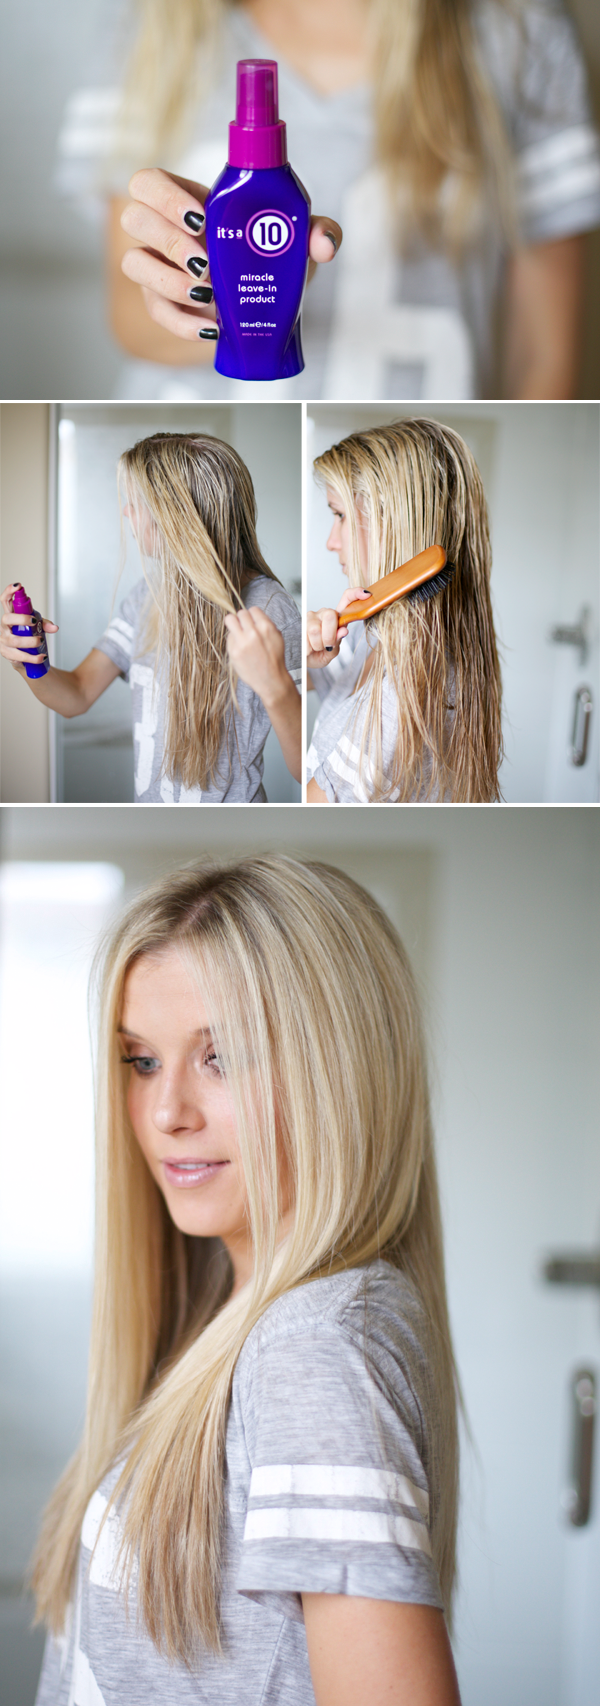 style hair without product product review it s a 10 hair styling spray hair 8288